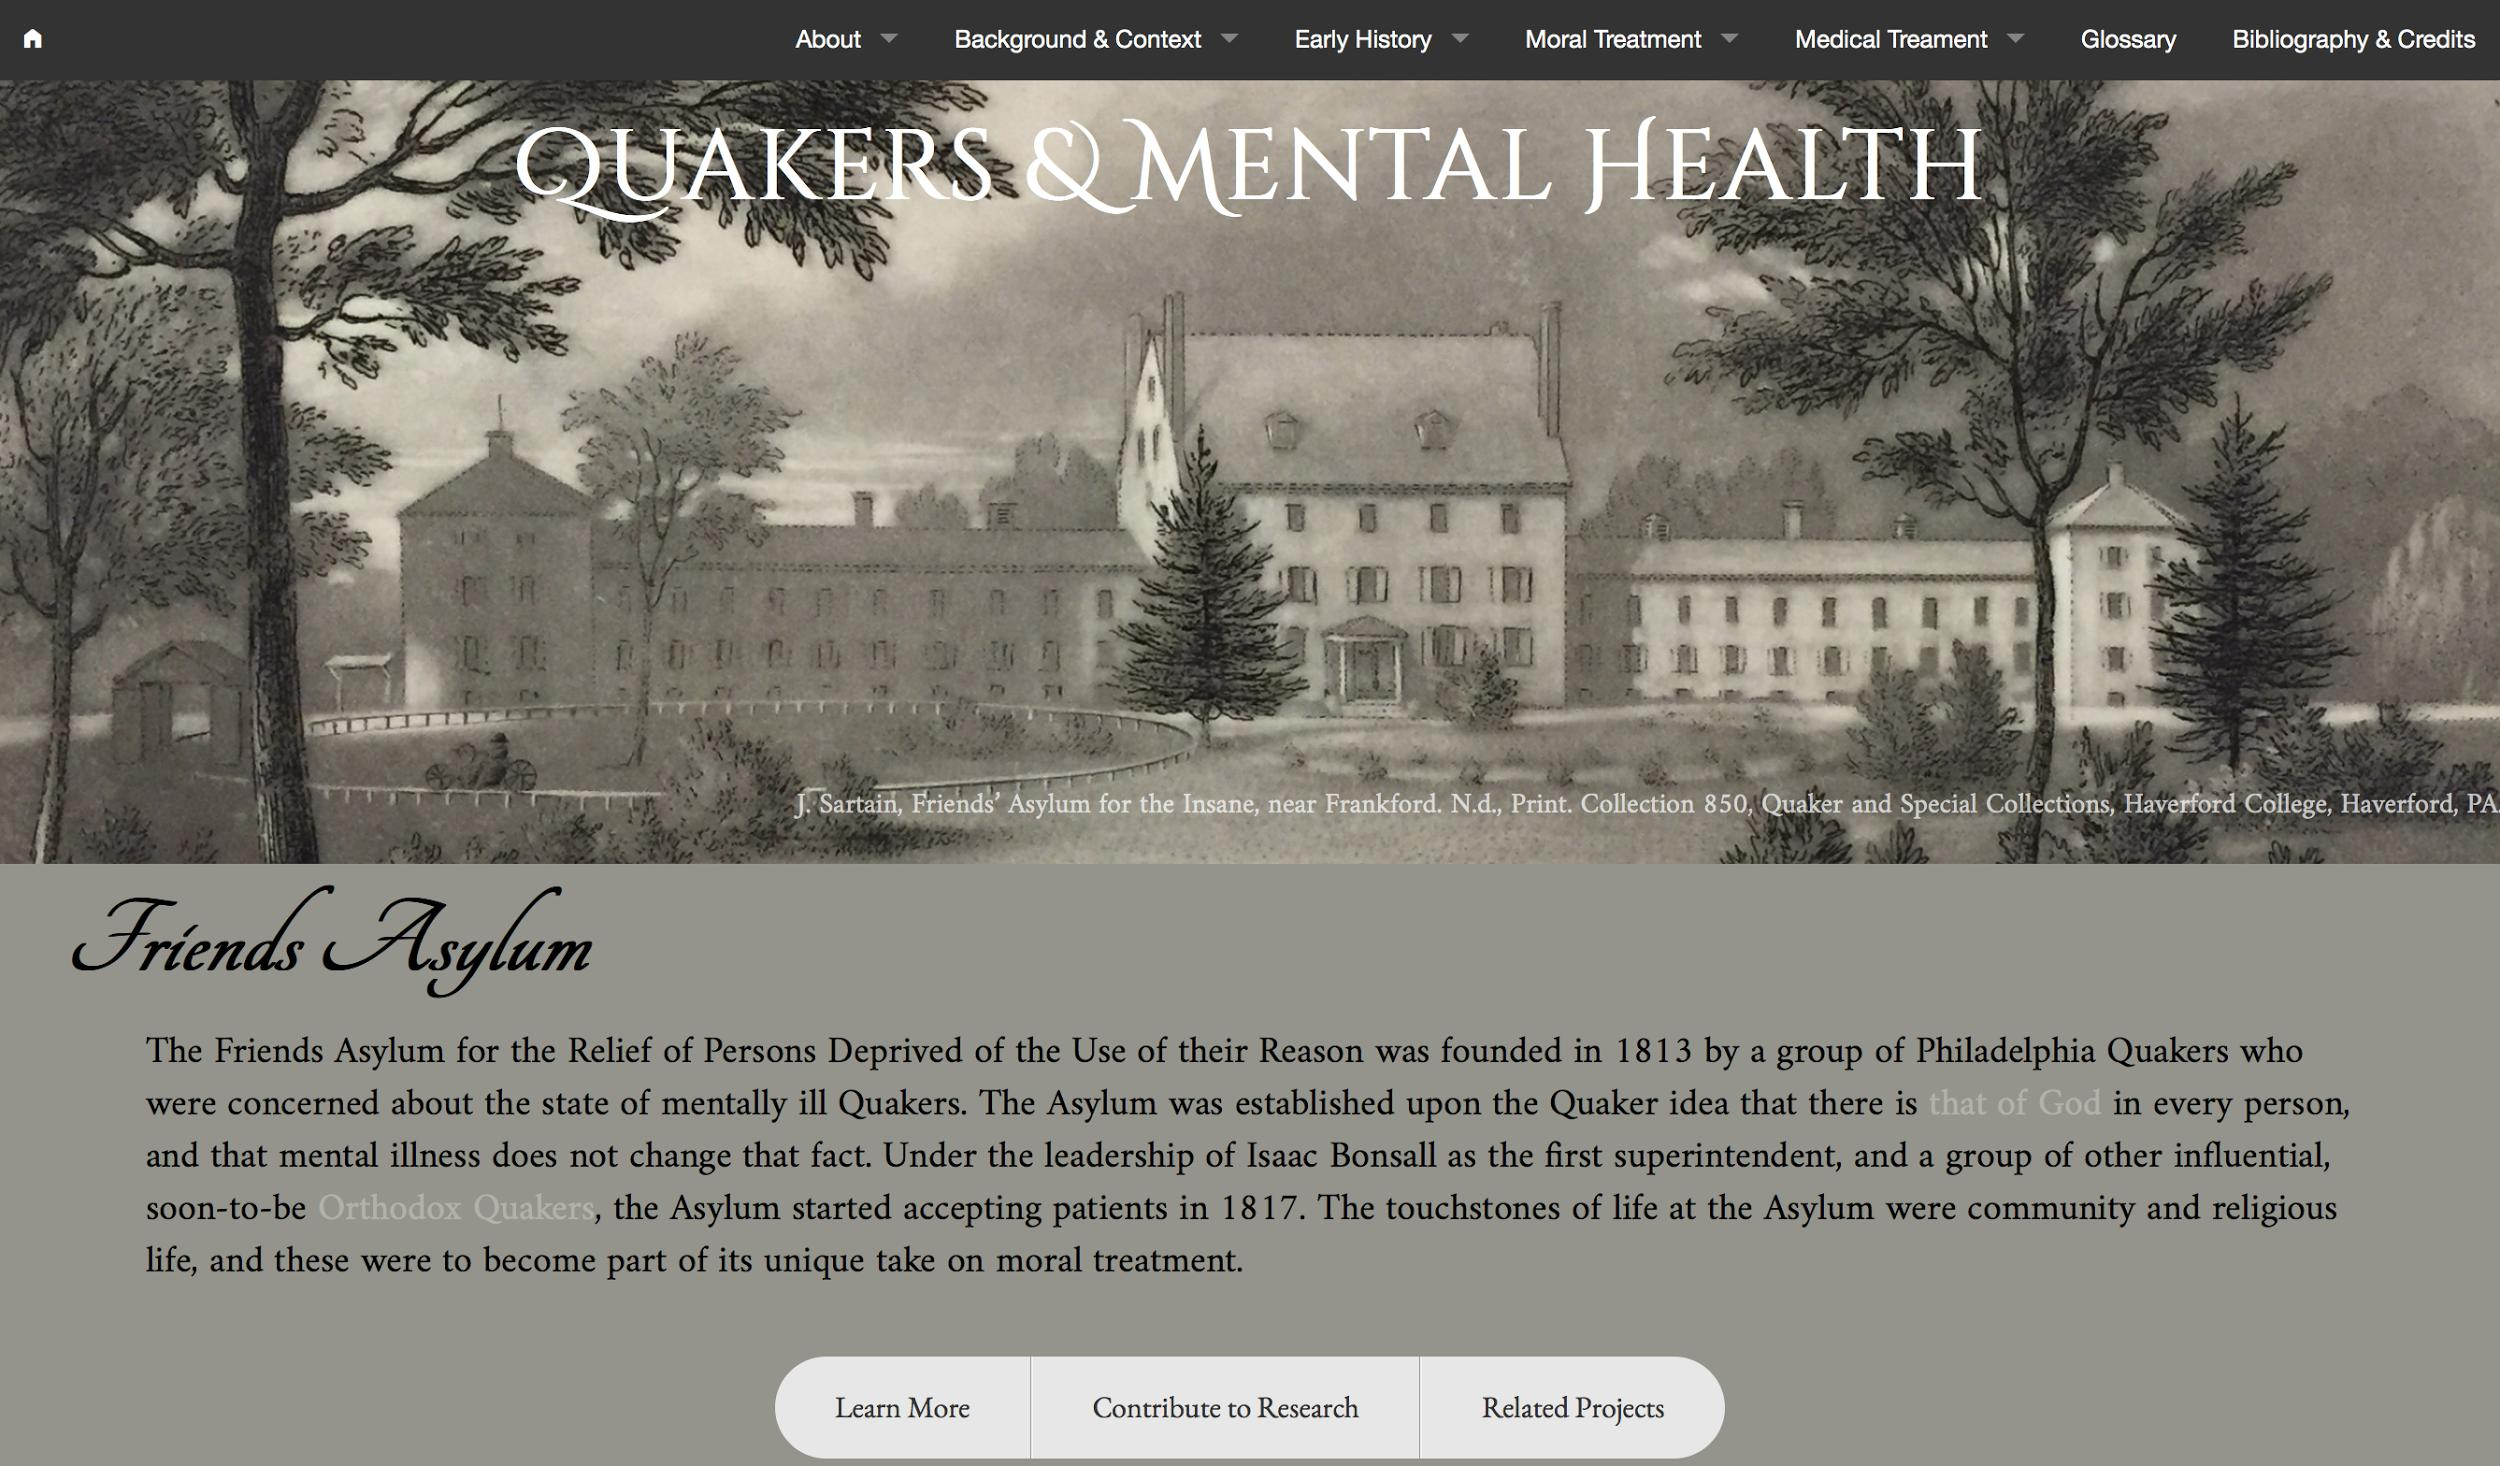 Quakers and Mental Health homepage